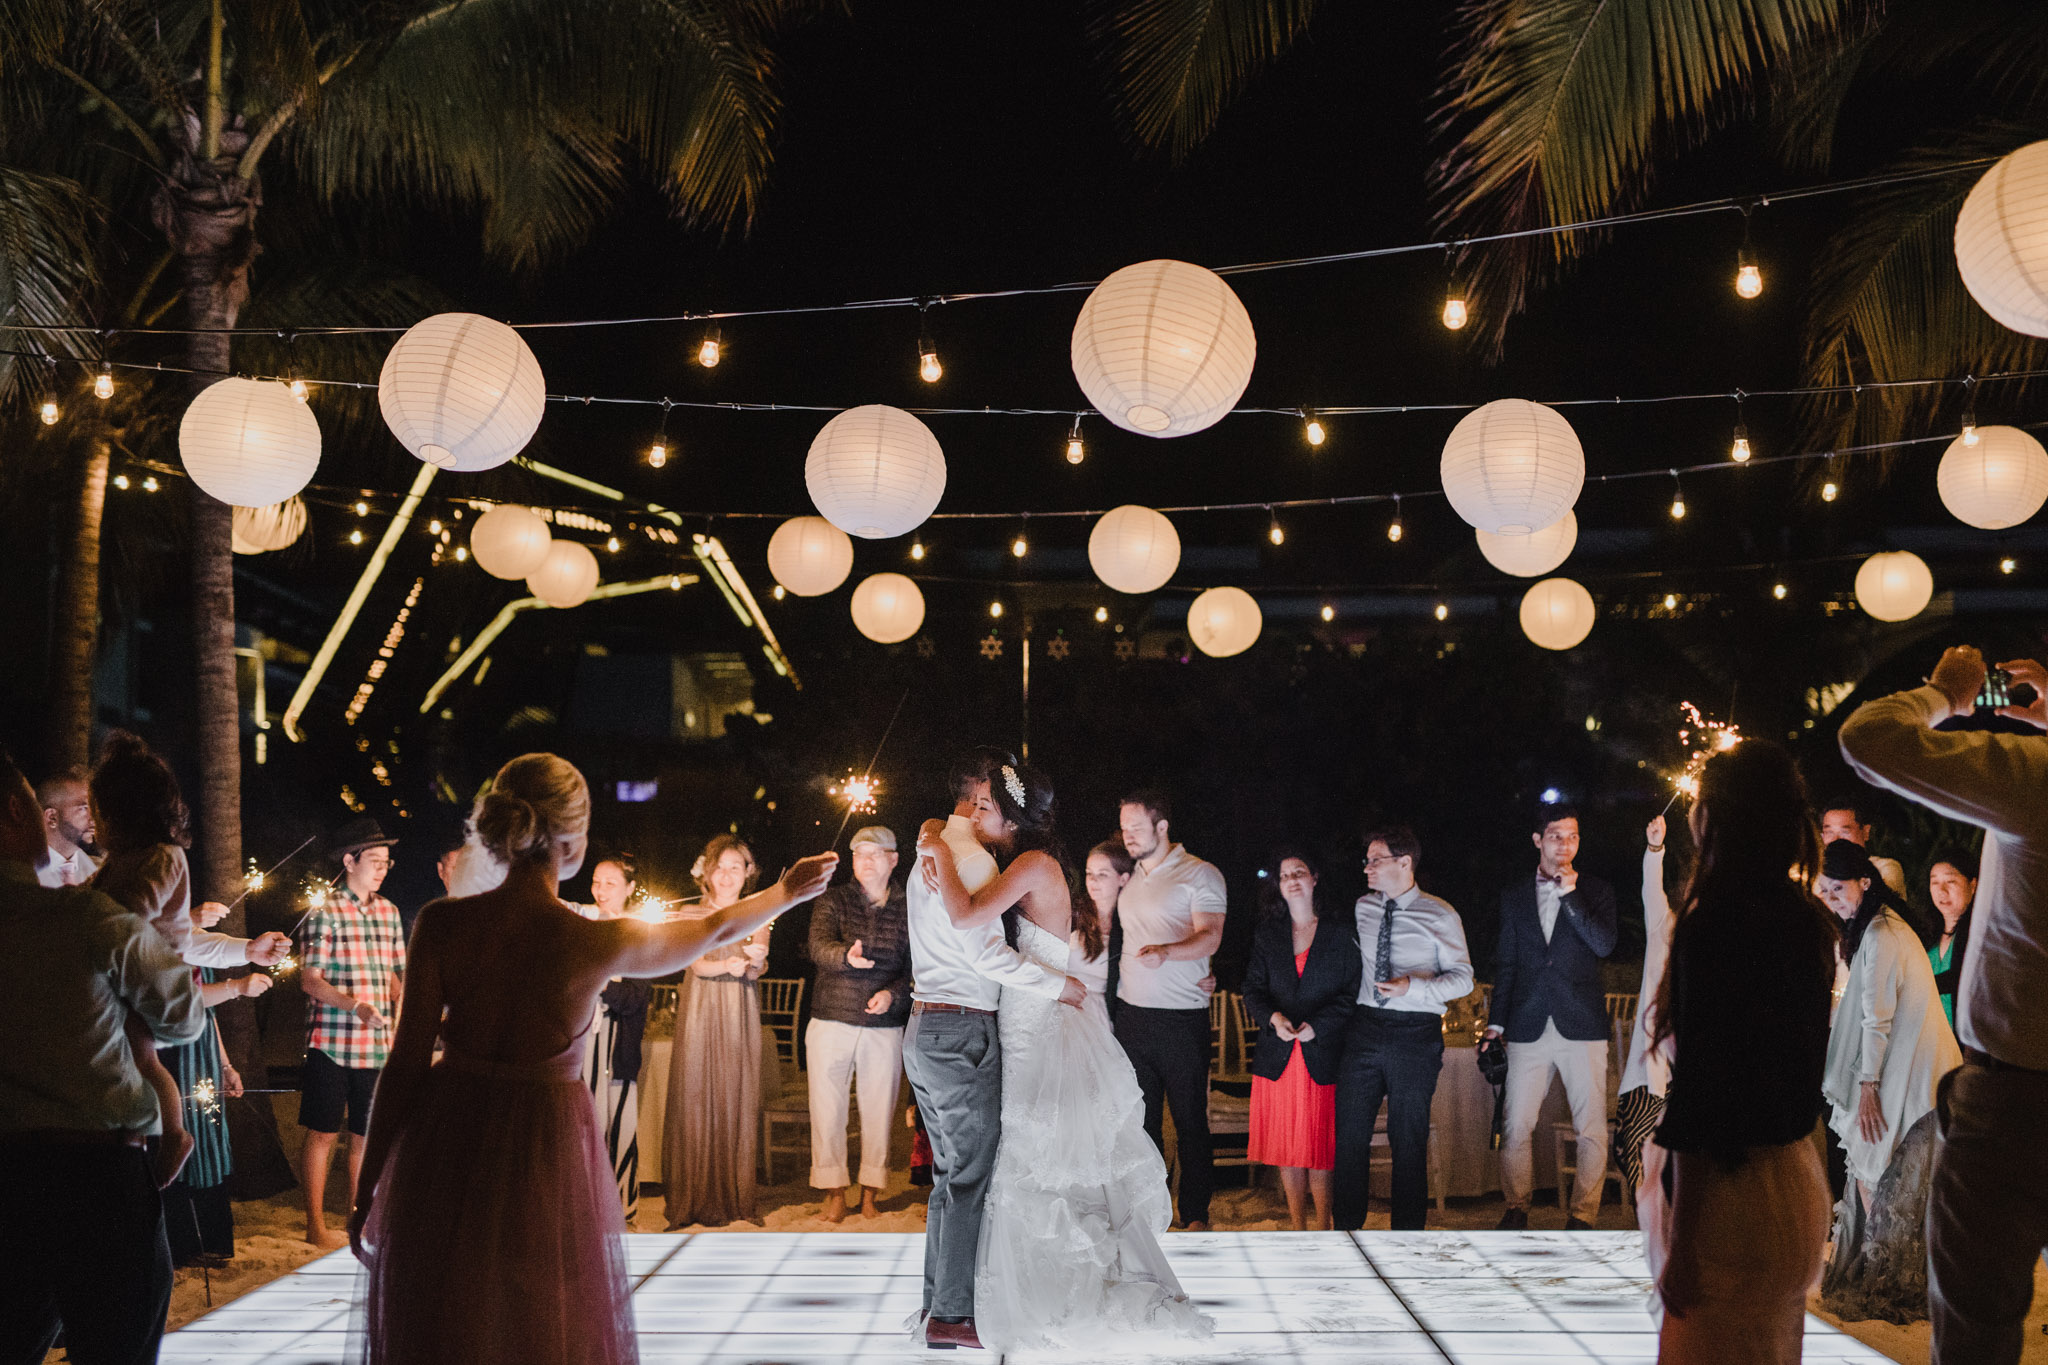 Cancun Mexico Wedding - first dance with sparklers